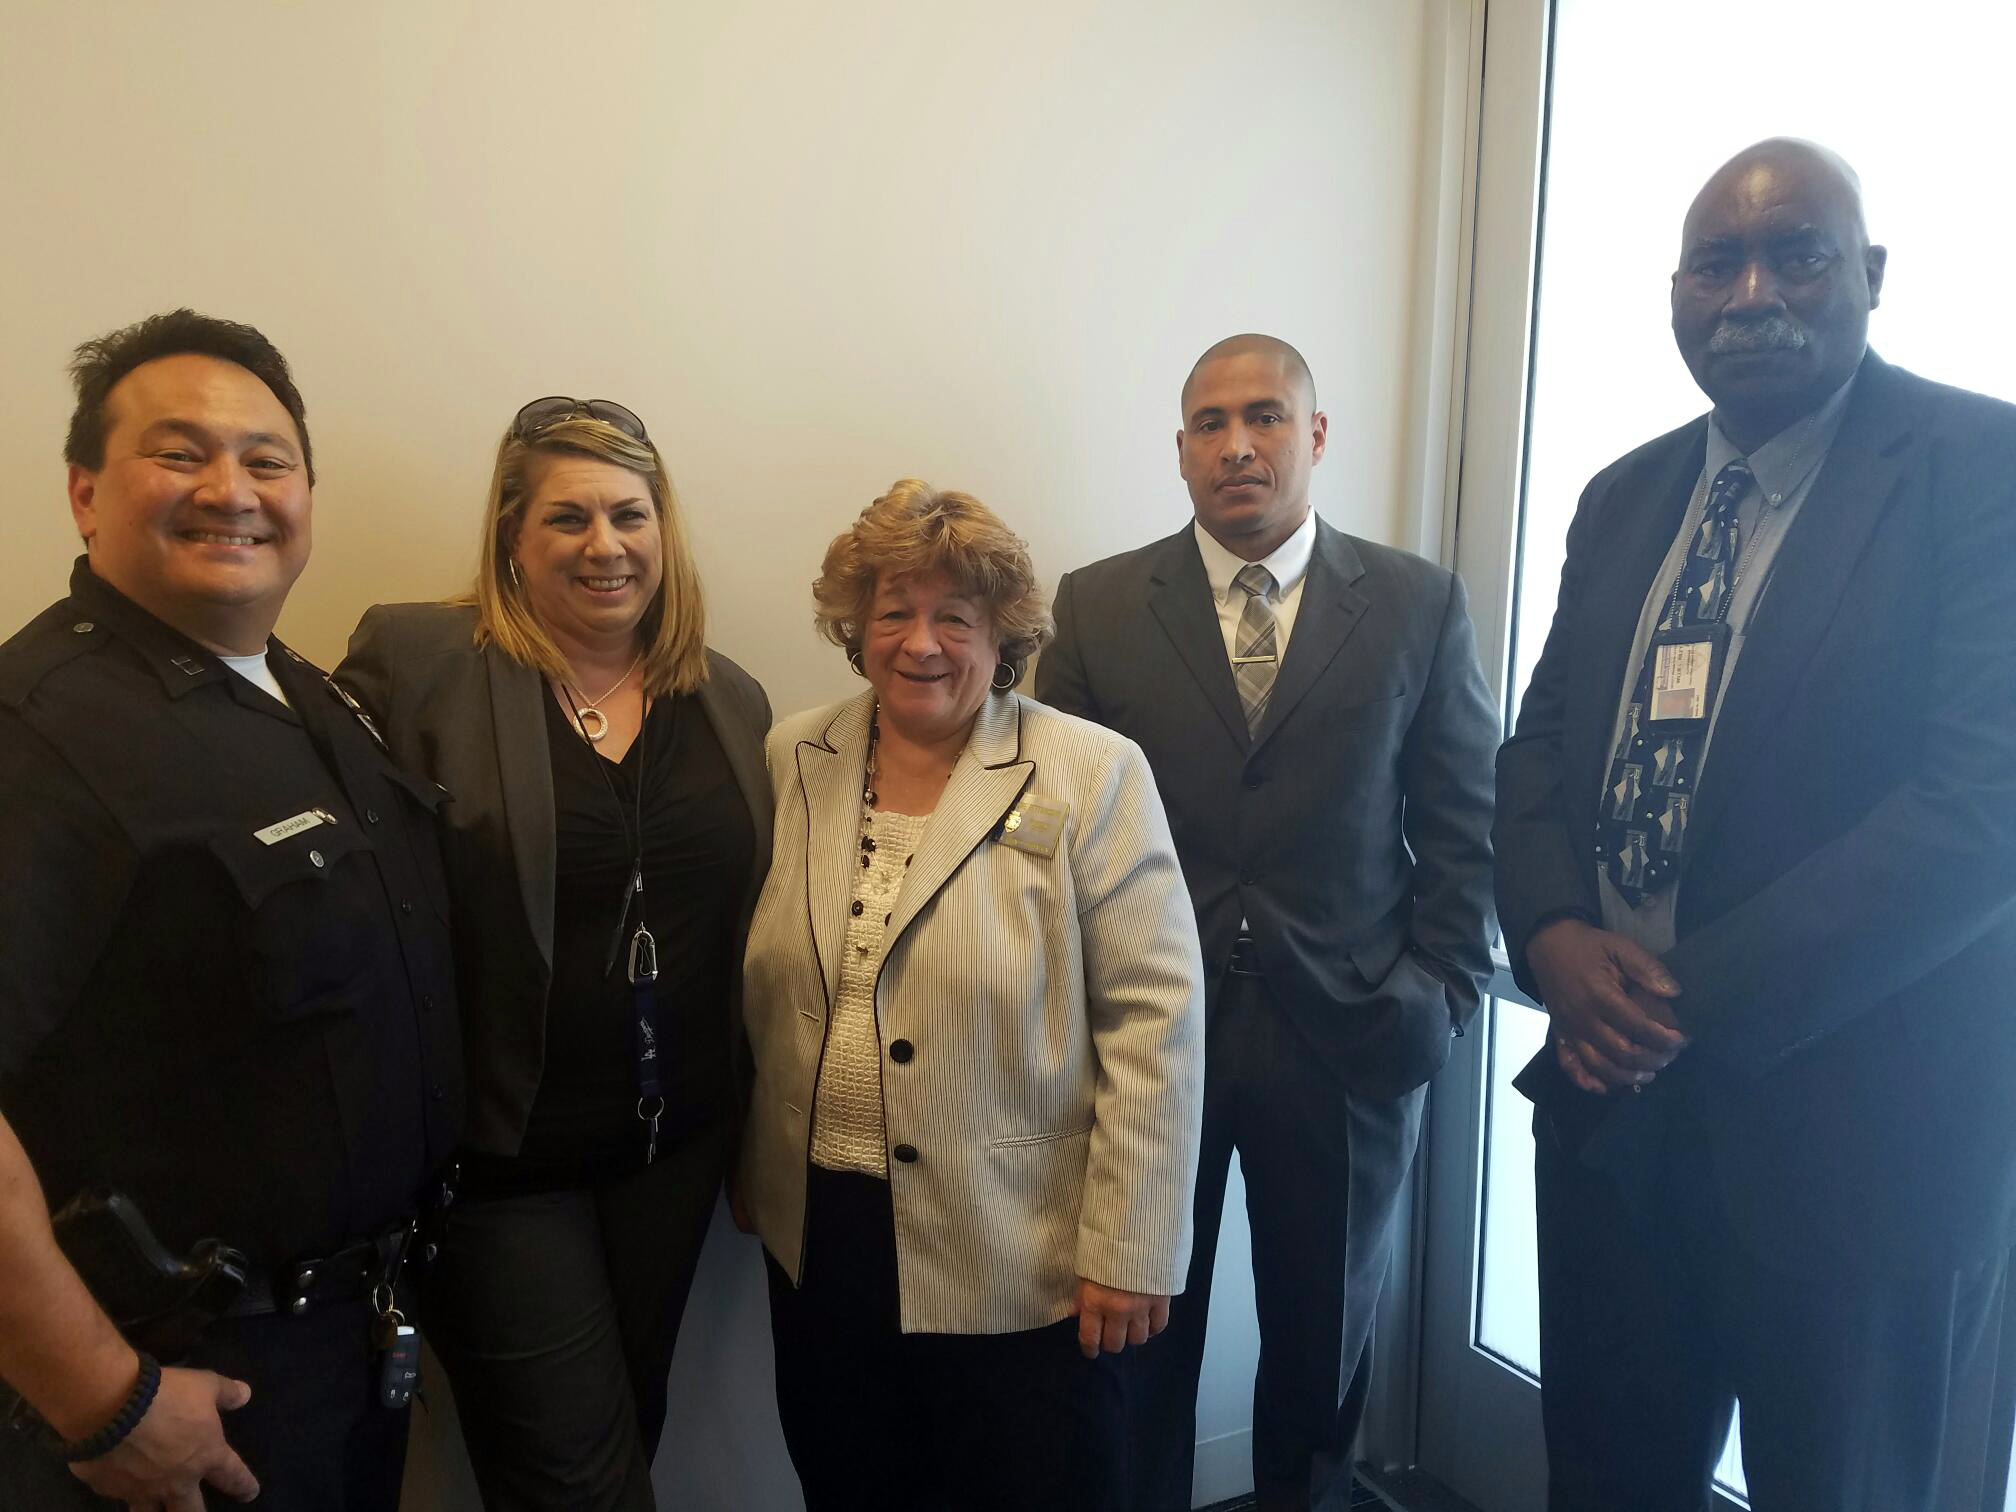 Representatives from the Los Angeles Police Department and the County of Los Angeles Probation Department